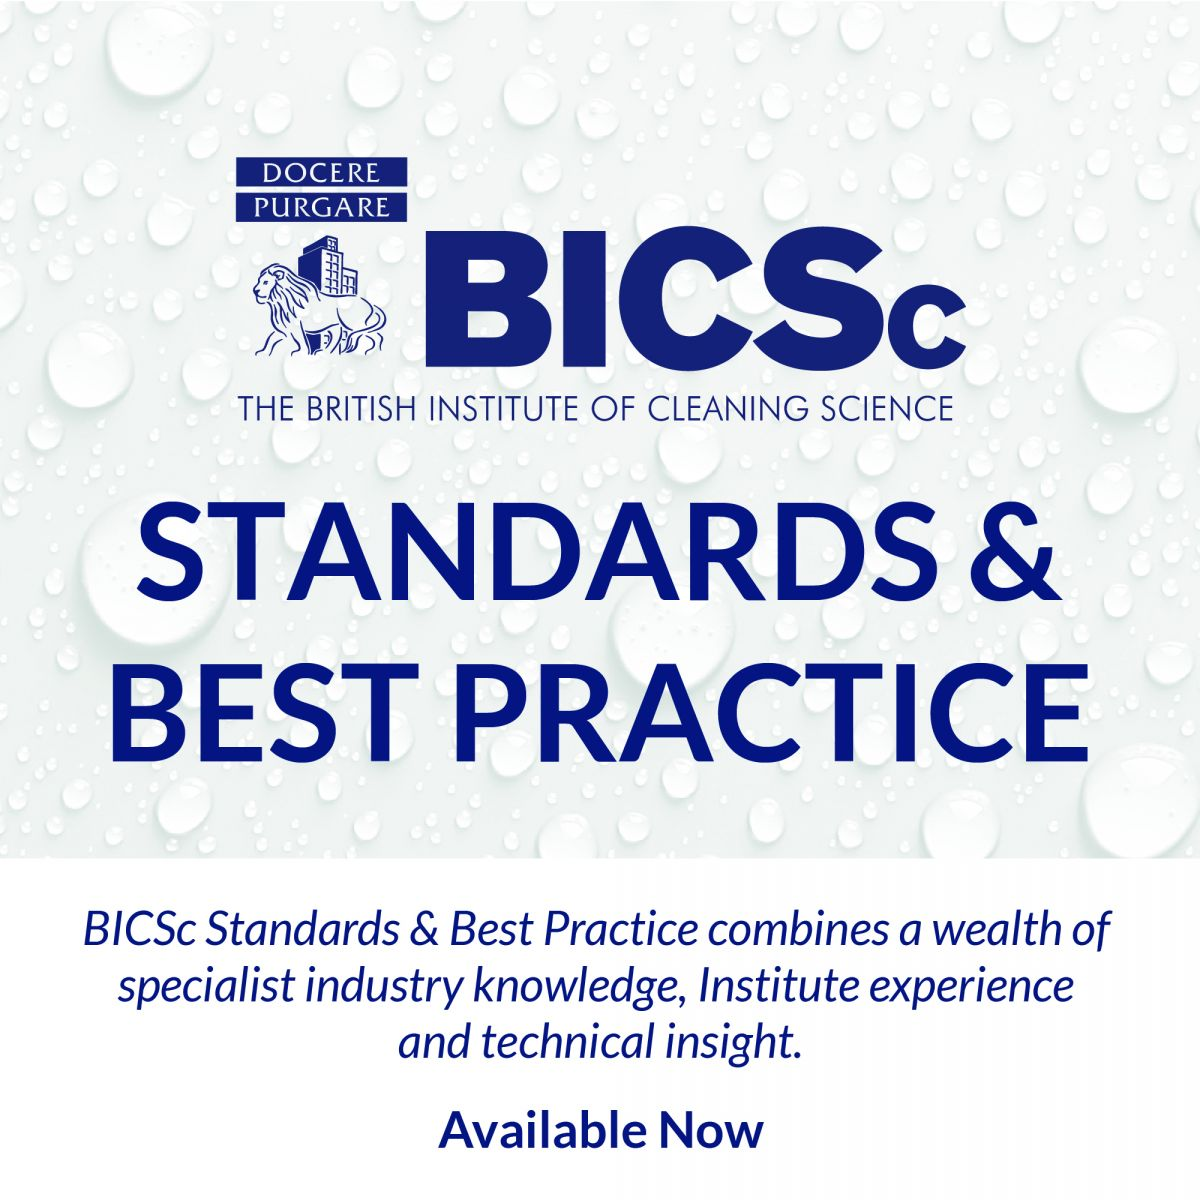 BICSc document